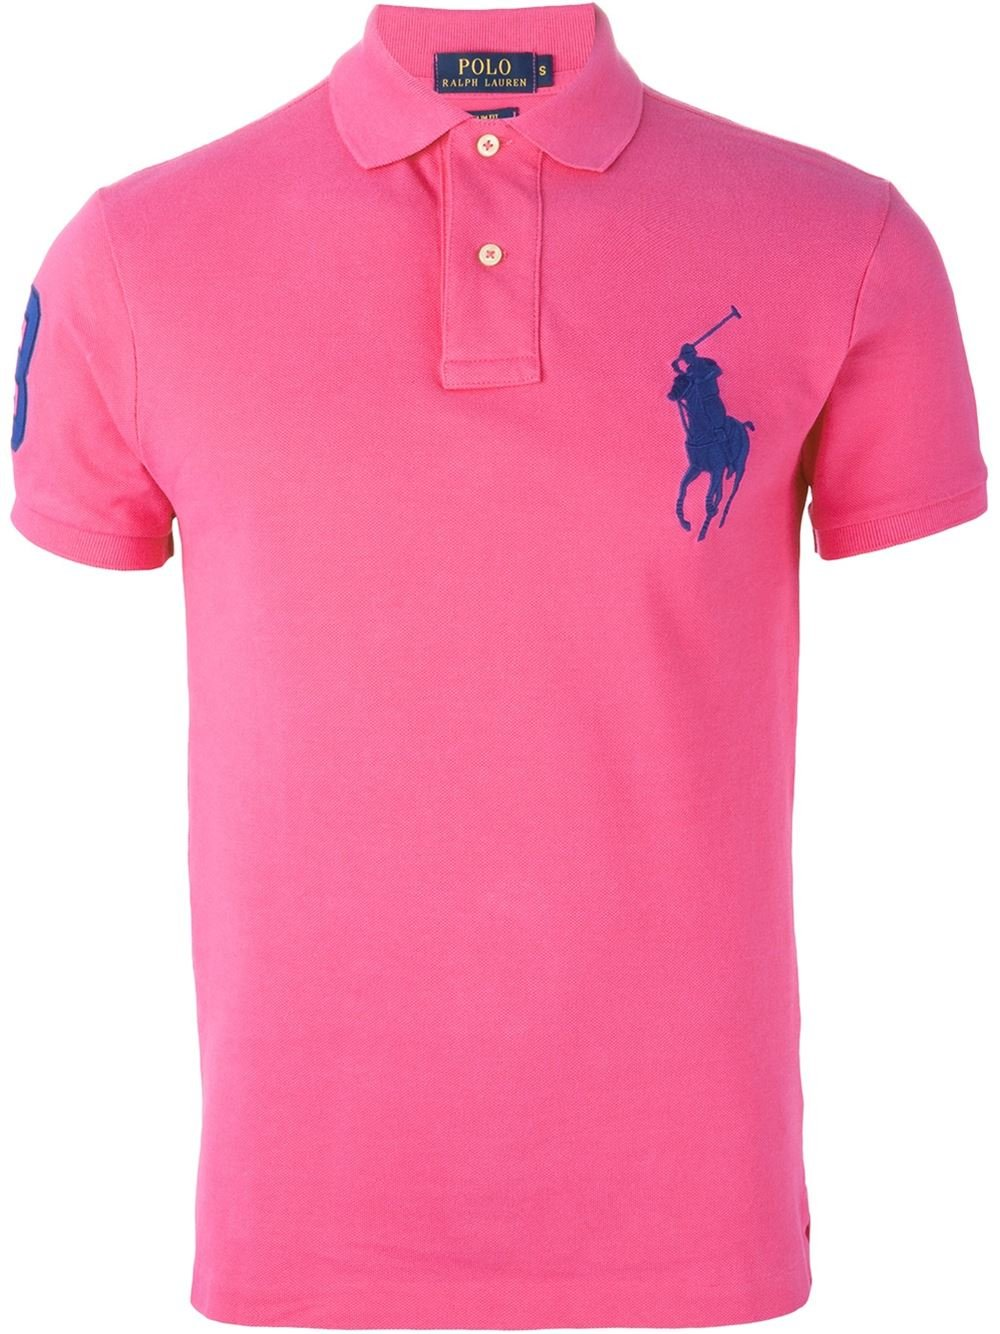 Polo Ralph Lauren Logo Embroidered Polo Shirt In Pink For